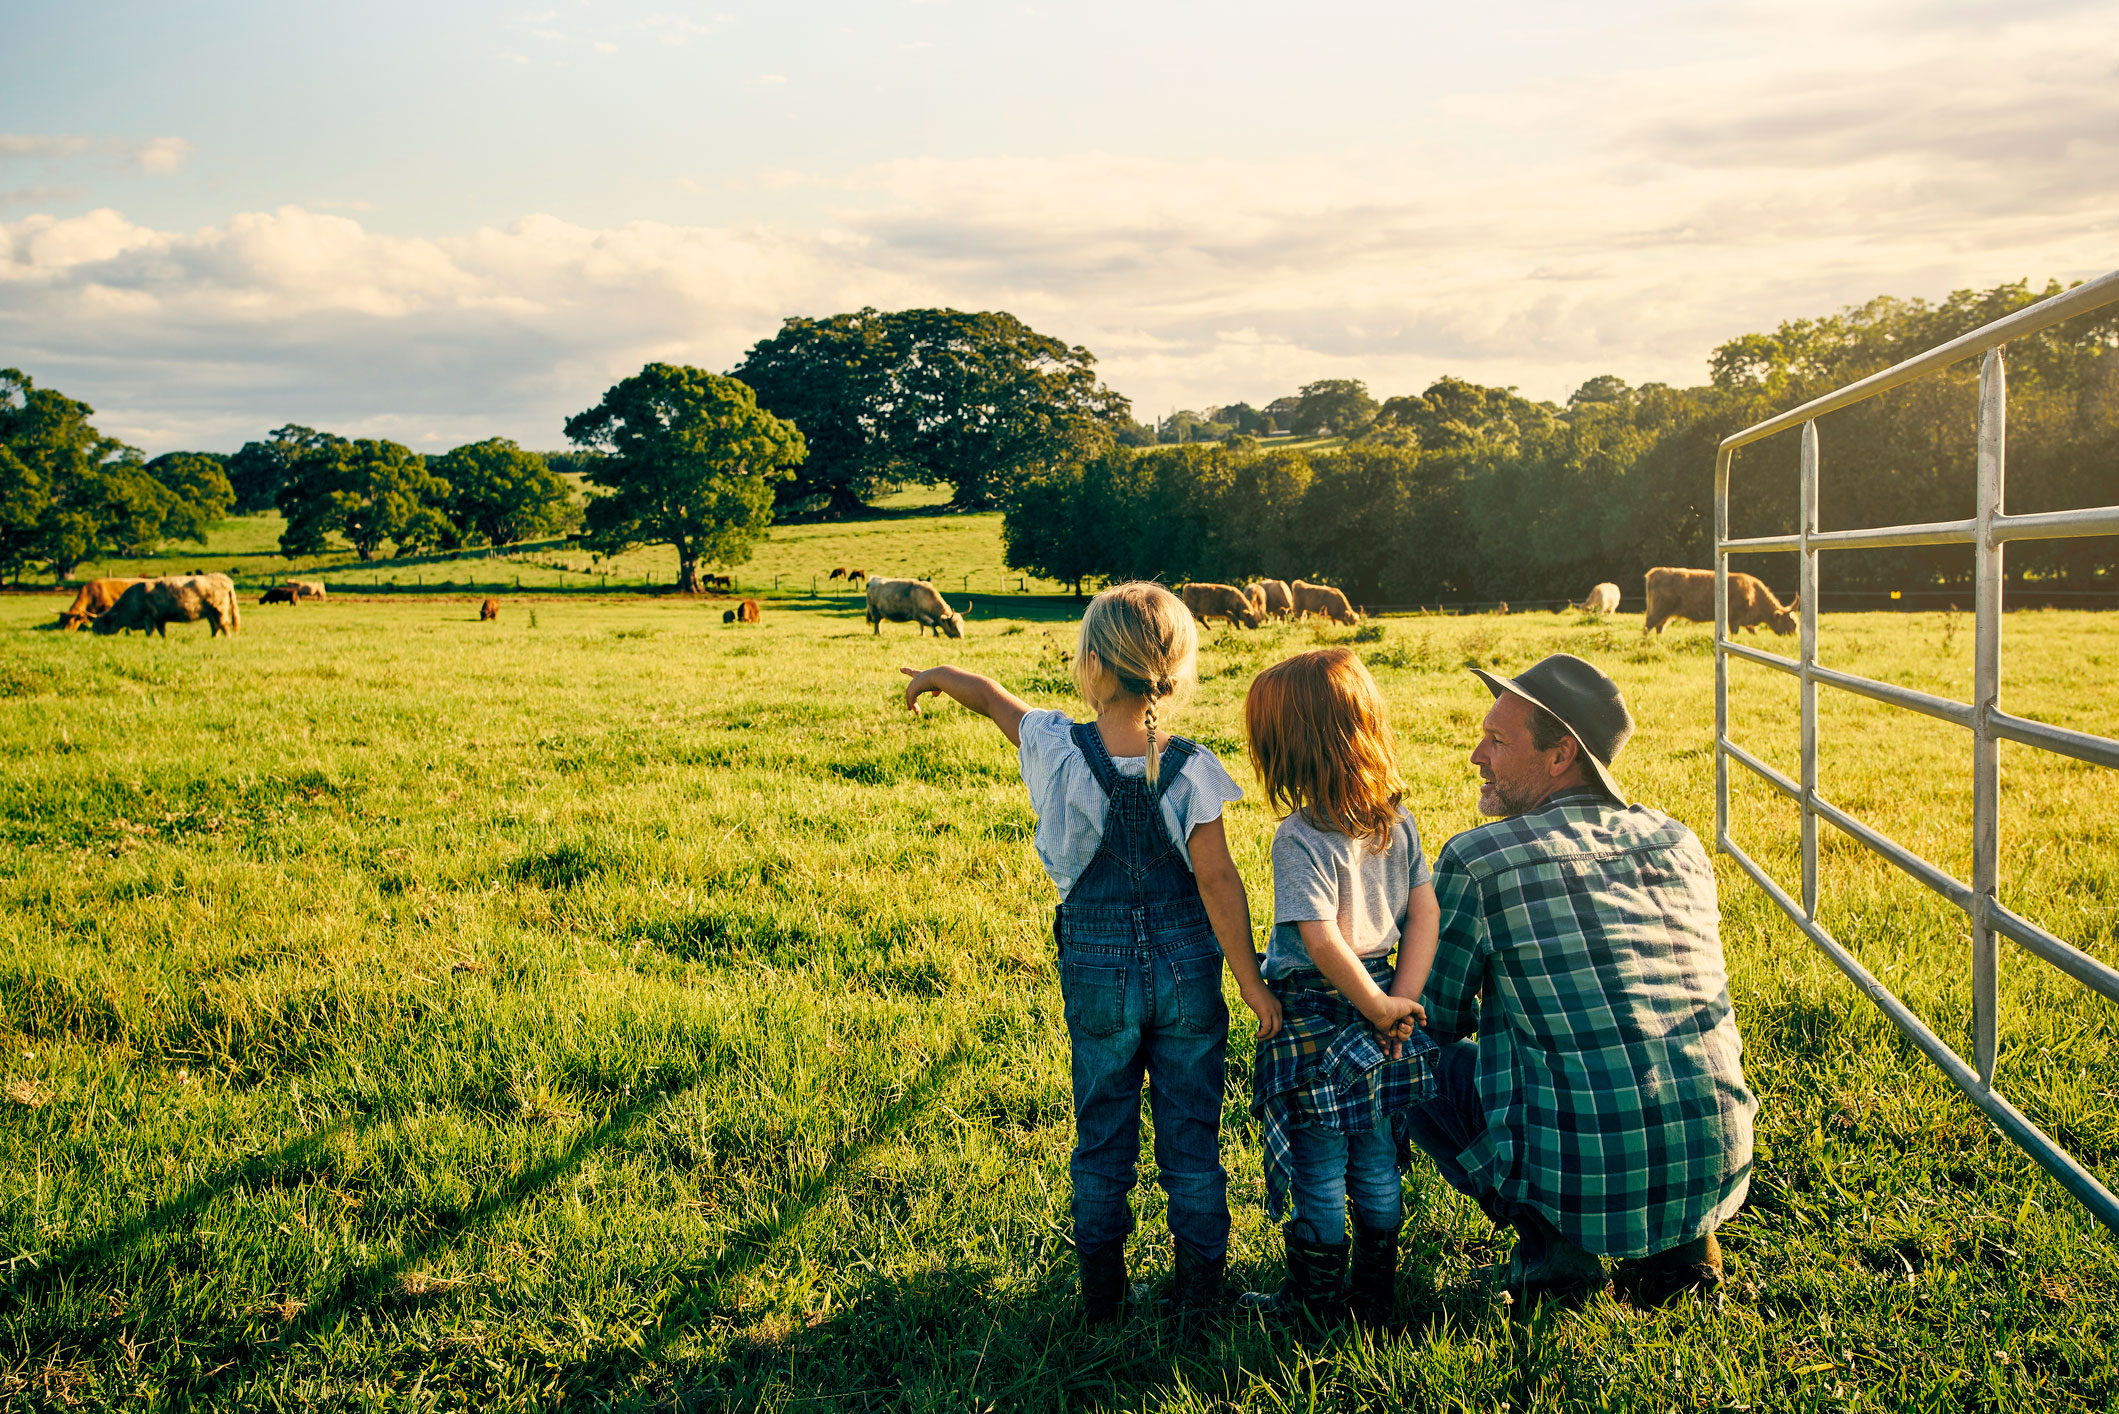 Farmer and family looking at livestock on an Australian farm